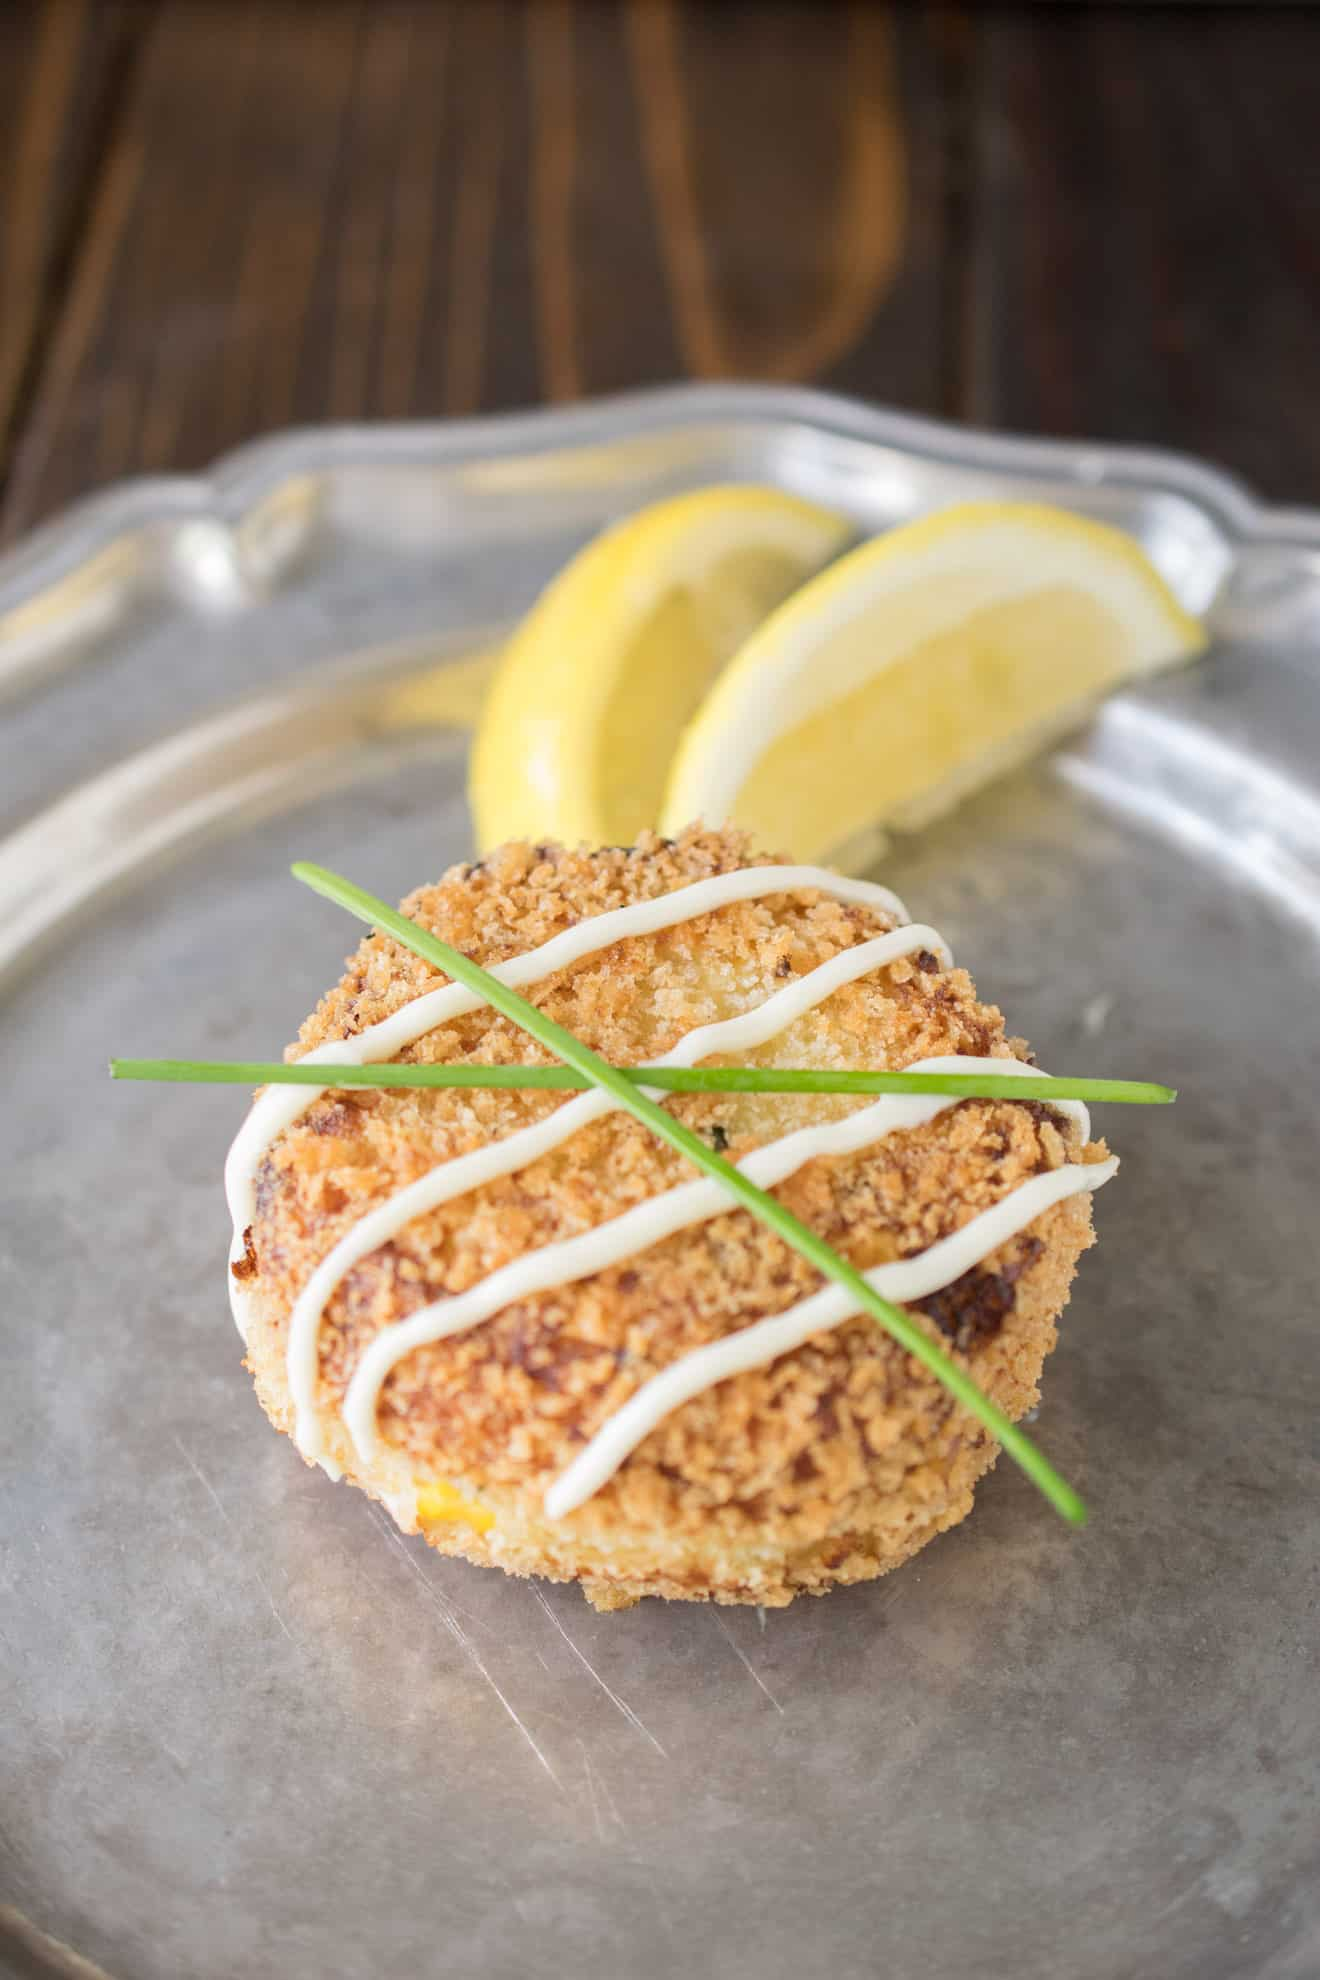 A cheesy tuna melt cake on a plate with a drizzle, chives and lemon